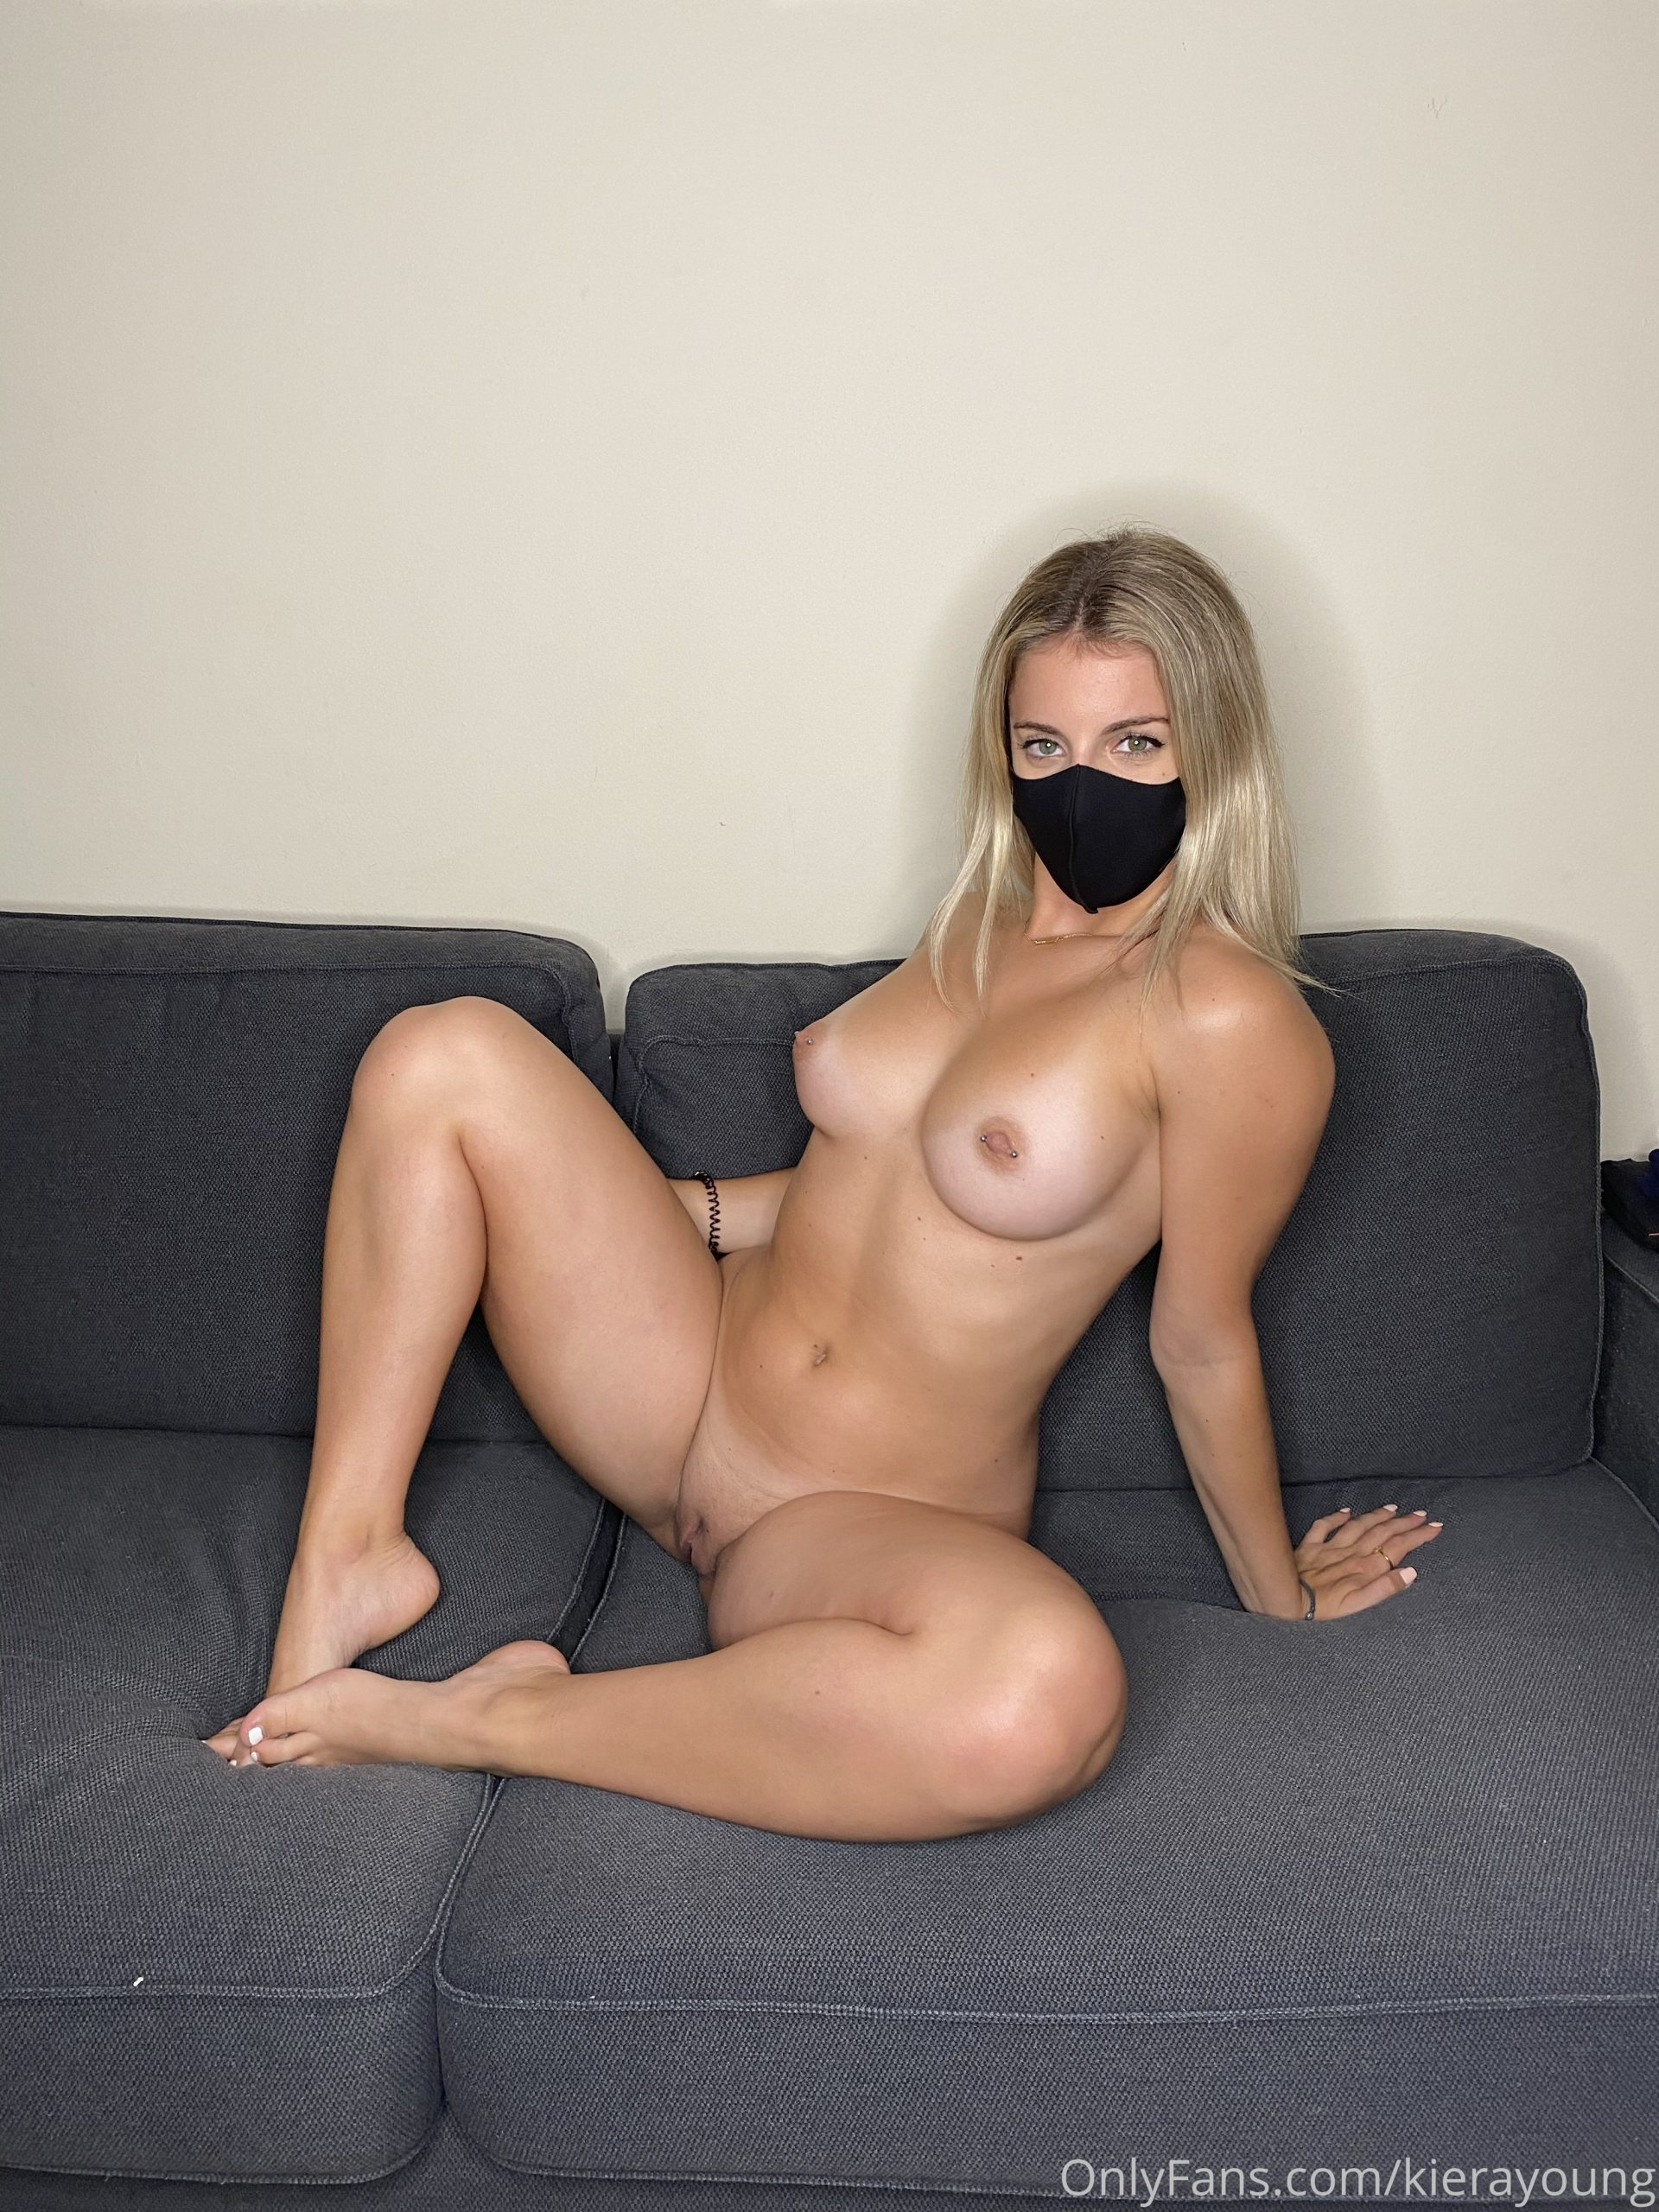 Kiera Young, Onlyfans 0001